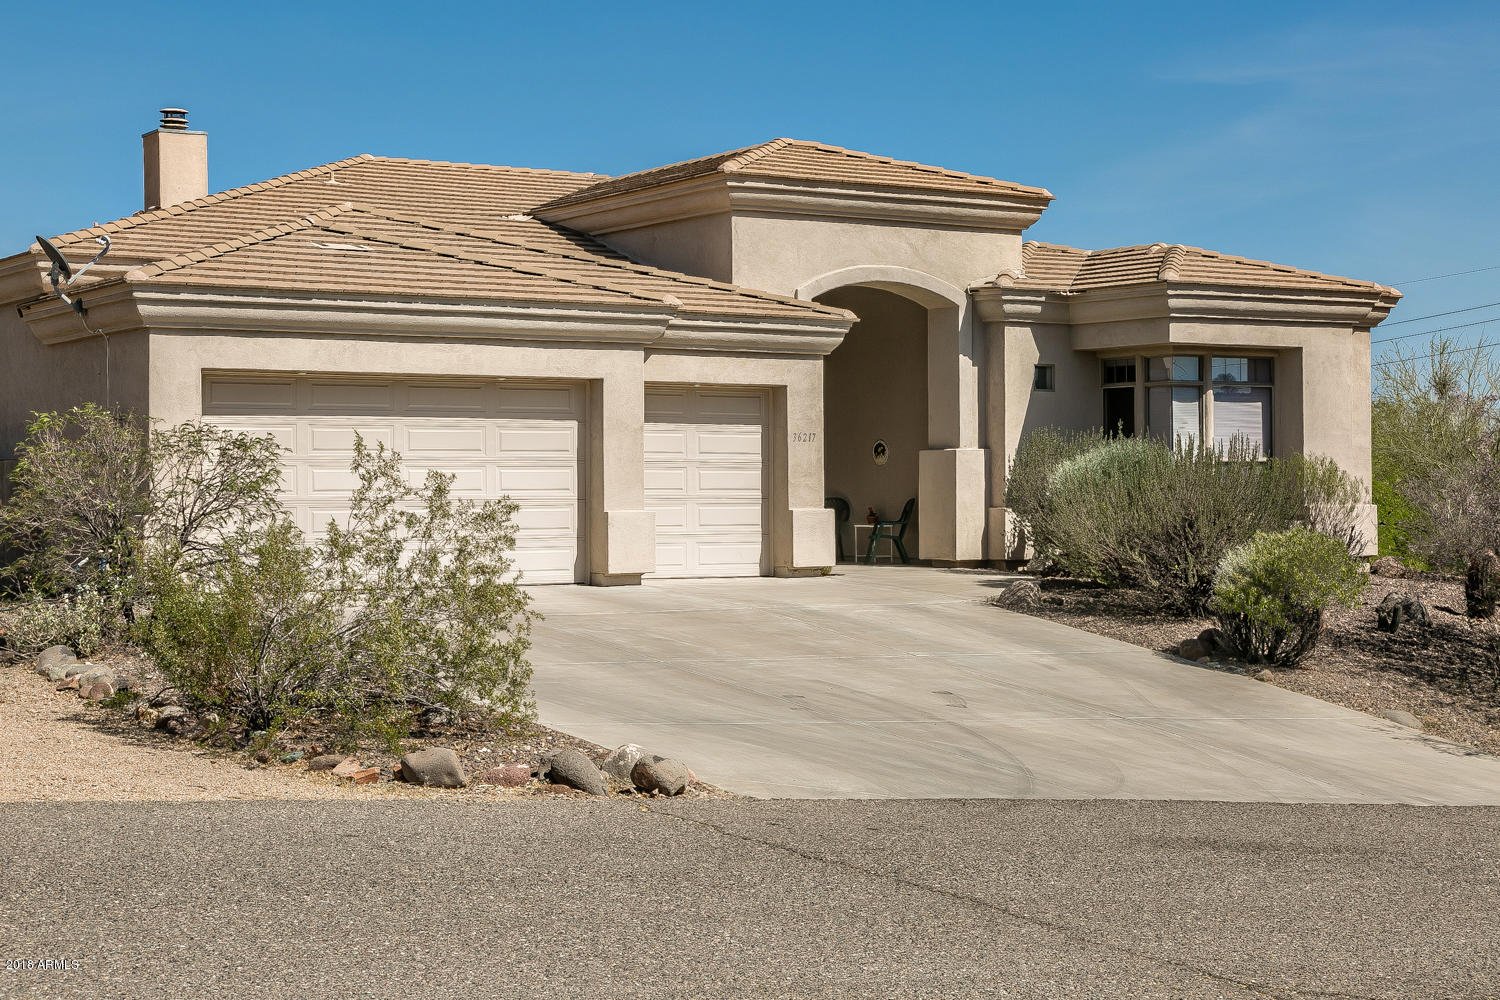 36217 N 34th Lane, Anthem, Arizona